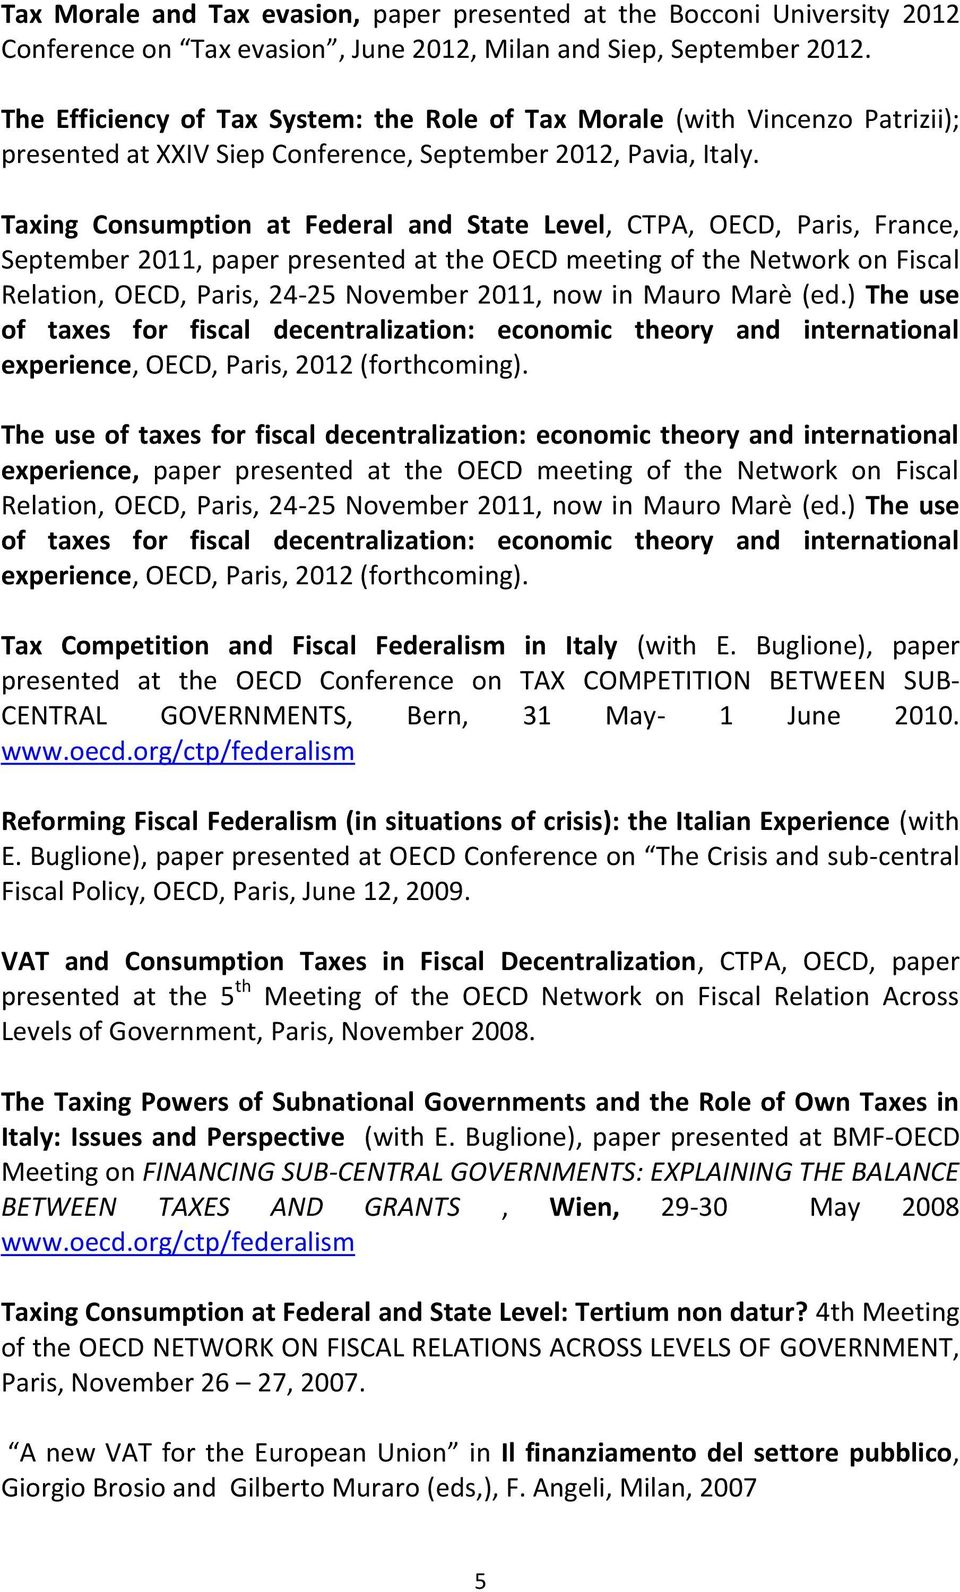 Taxing Consumption at Federal and State Level, CTPA, OECD, Paris, France, September 2011, paper presented at the OECD meeting of the Network on Fiscal Relation, OECD, Paris, 24-25 November 2011, now